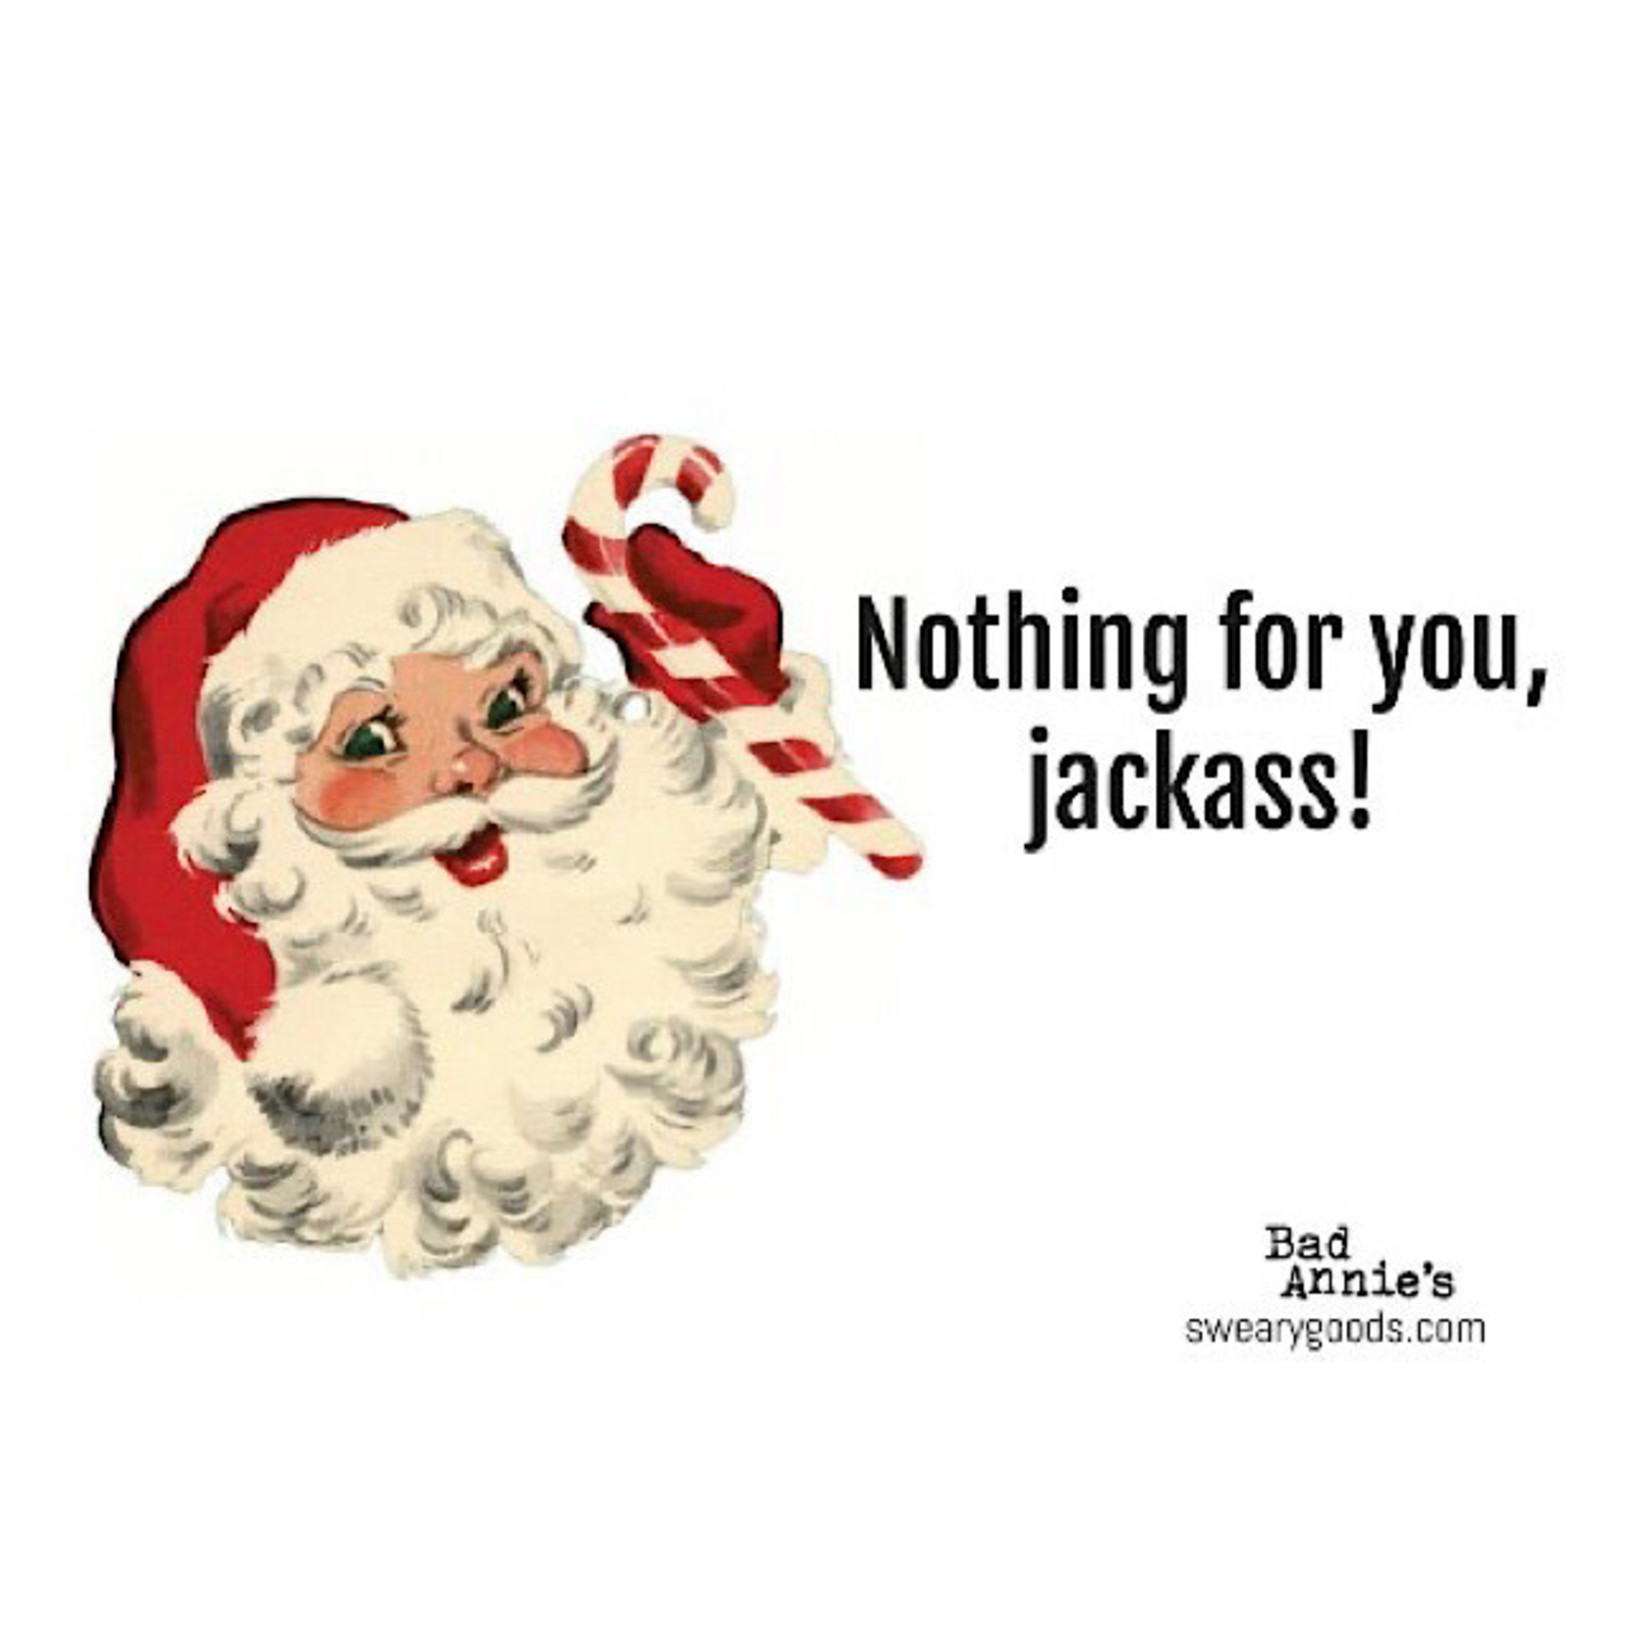 Bad Annie's Postcard - Nothing For You, Jackass